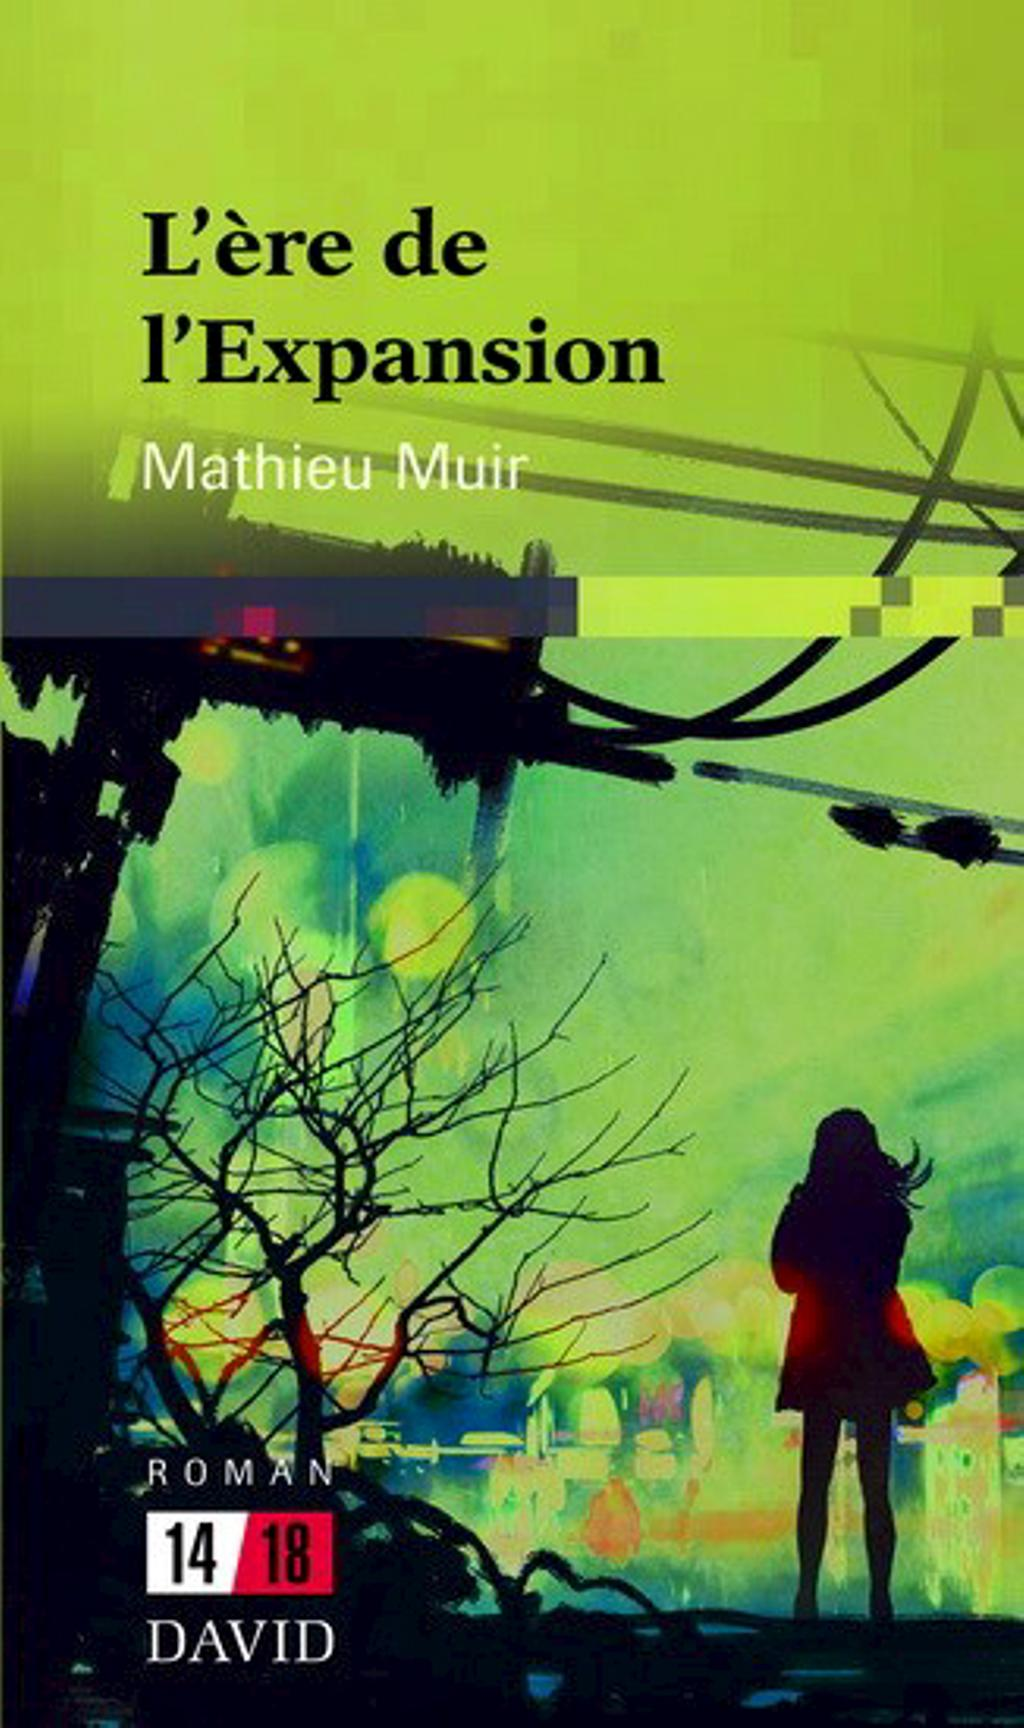 Mathieu Muir  L'ère de l'Expansion, SCIENCE-FICTION, Éditions David, 254 pages